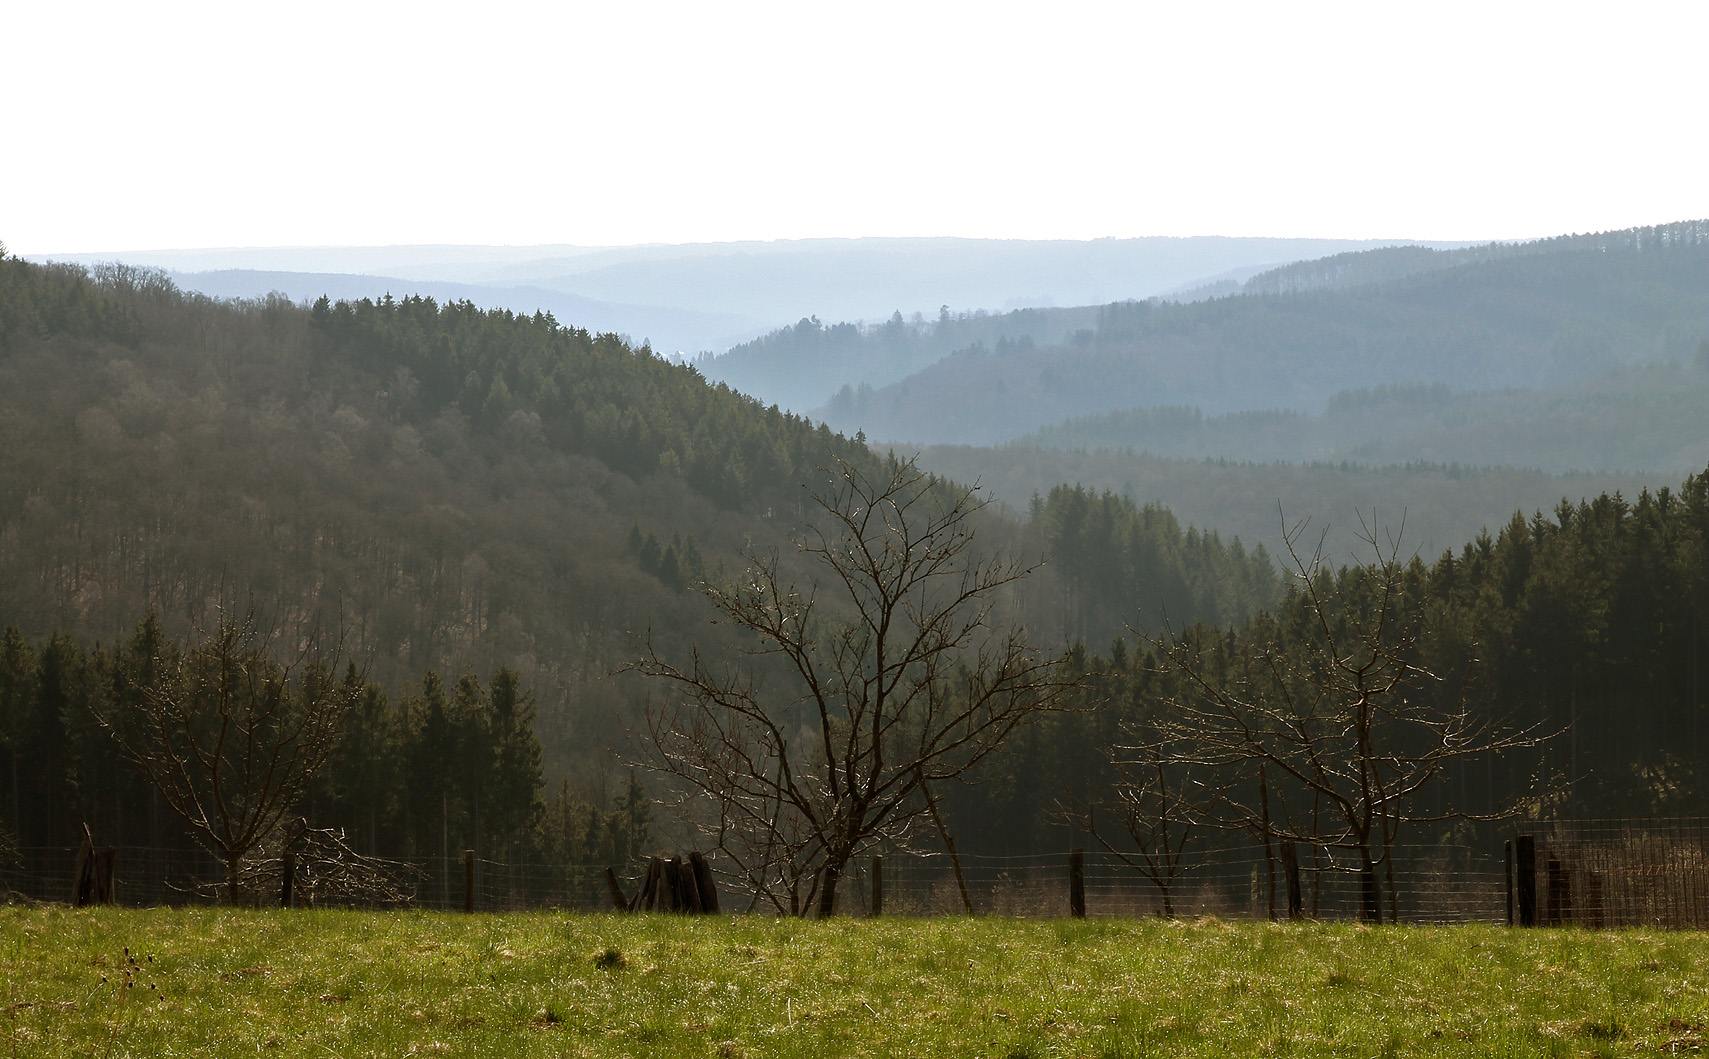 The Belgian Ardennes: hilly and forested.